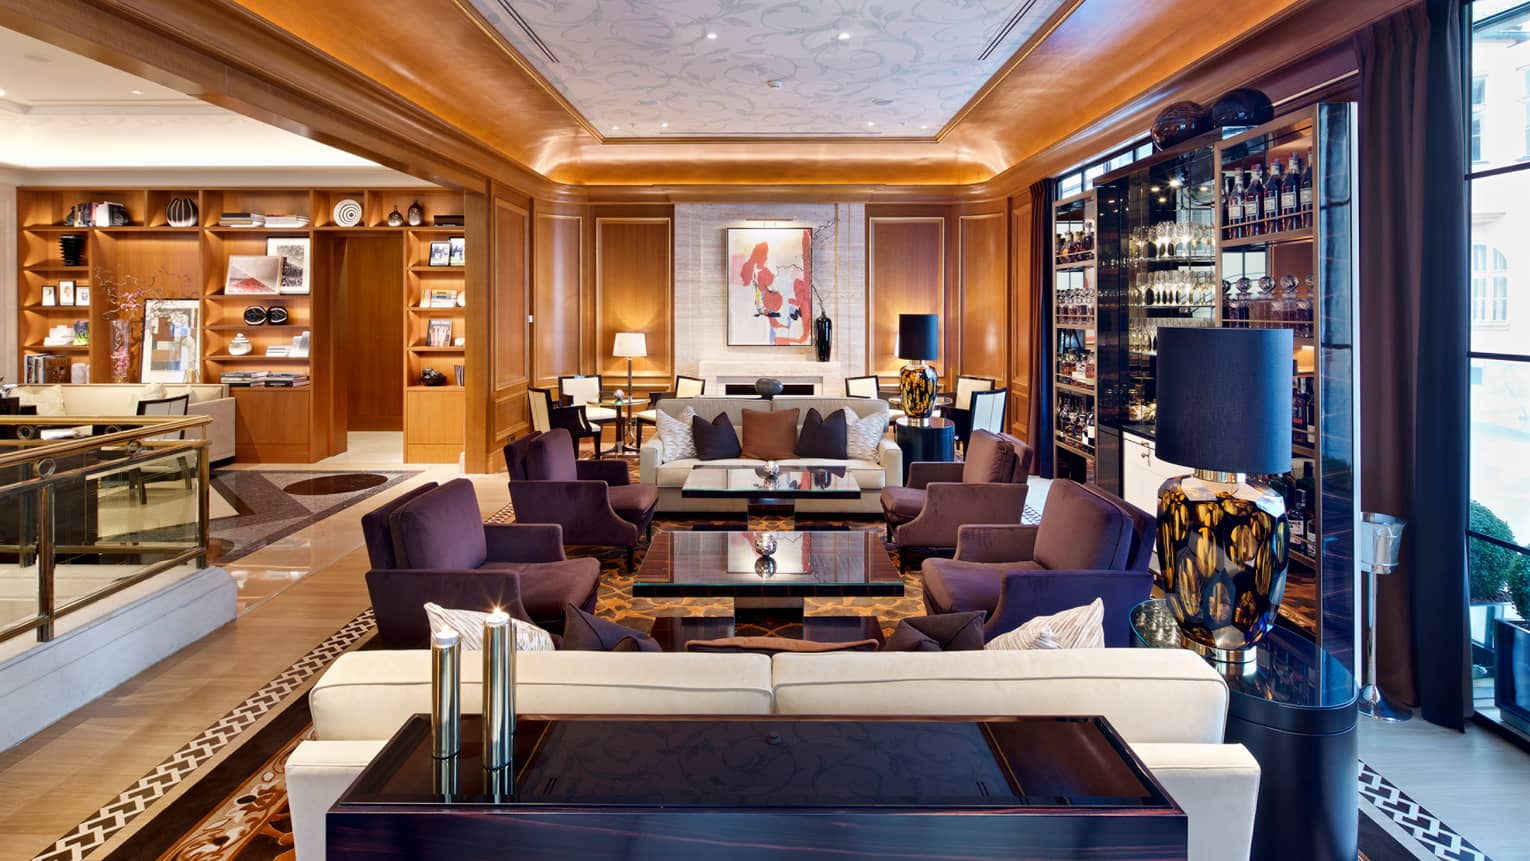 The Gallery bar and lounge with clusters of purple sofas, white armchairs, wall with wine and liquor bottles